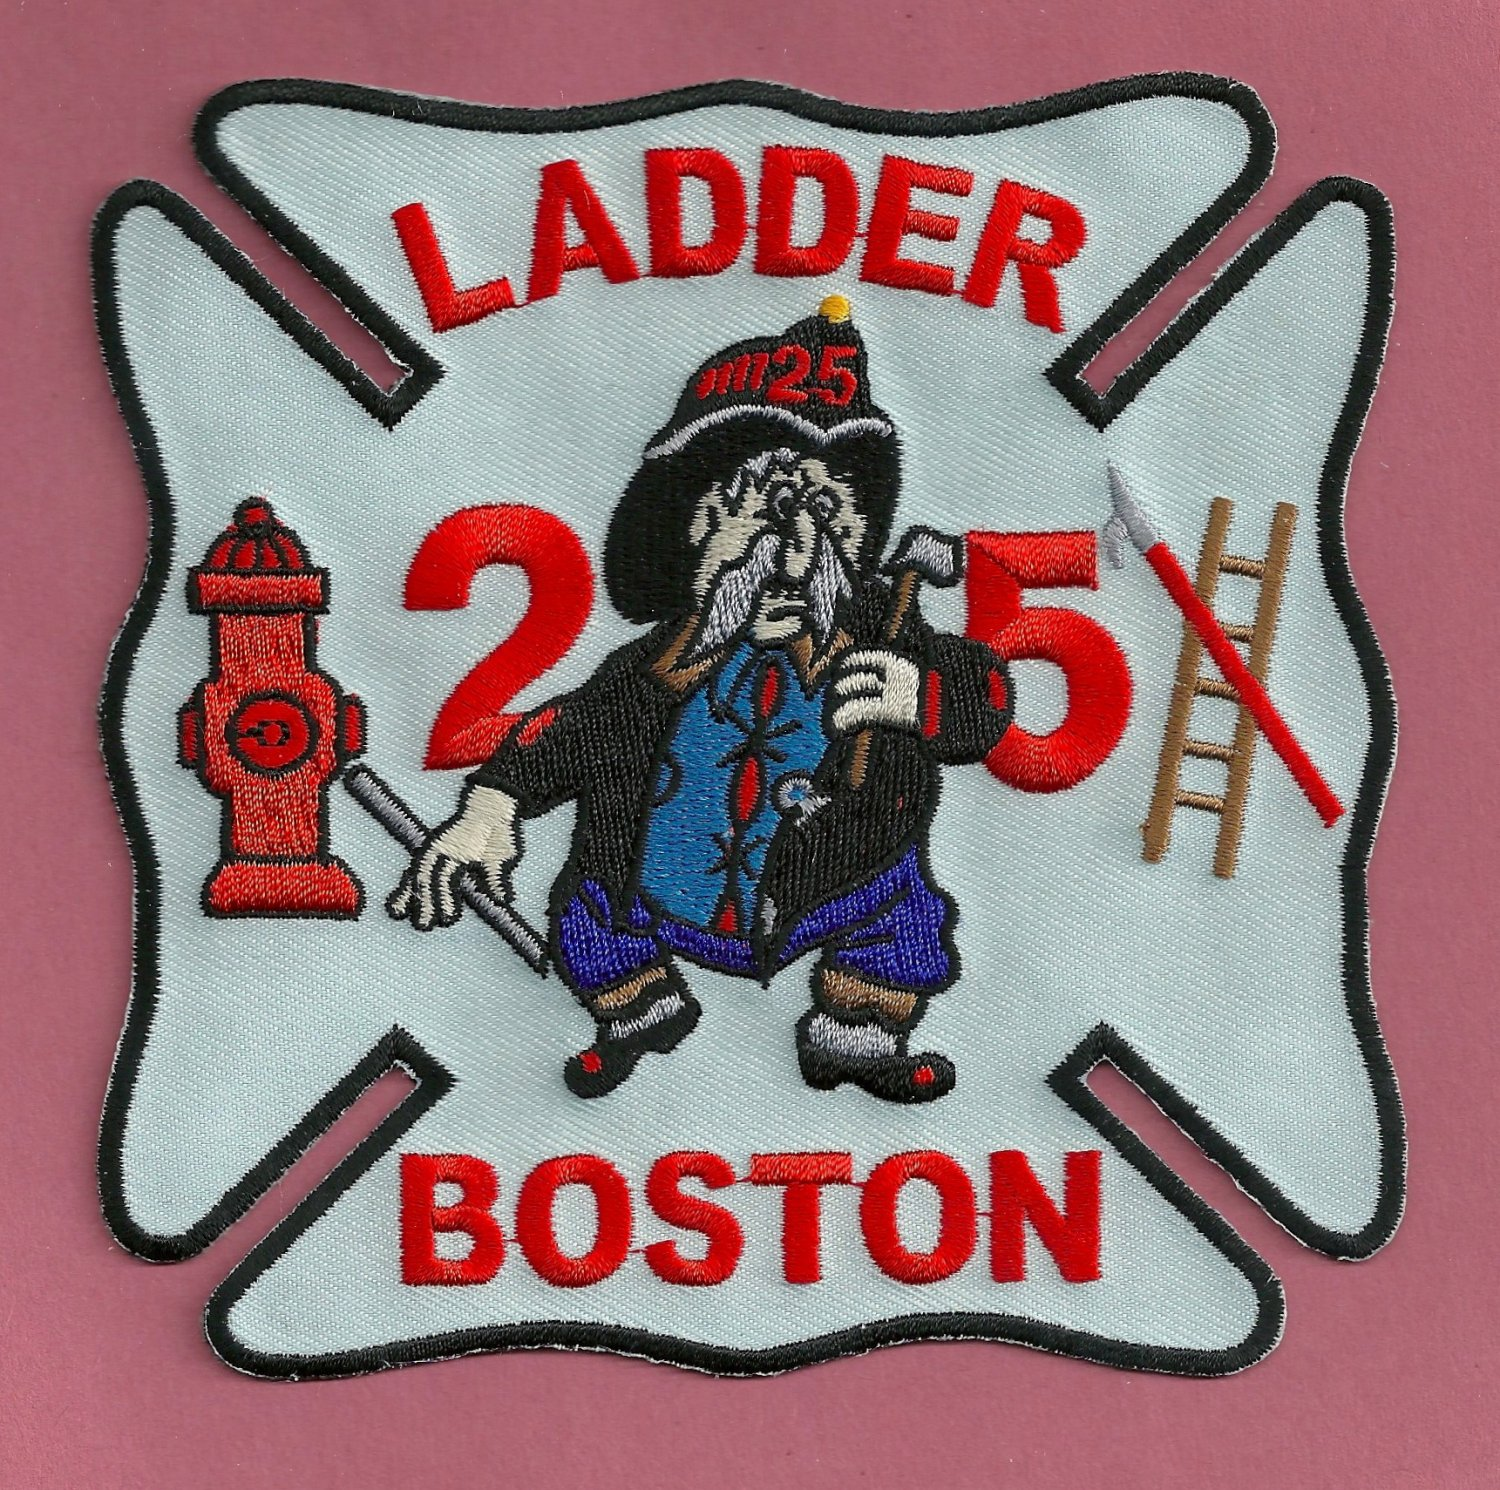 Boston Fire Department Ladder Company 25 Patch